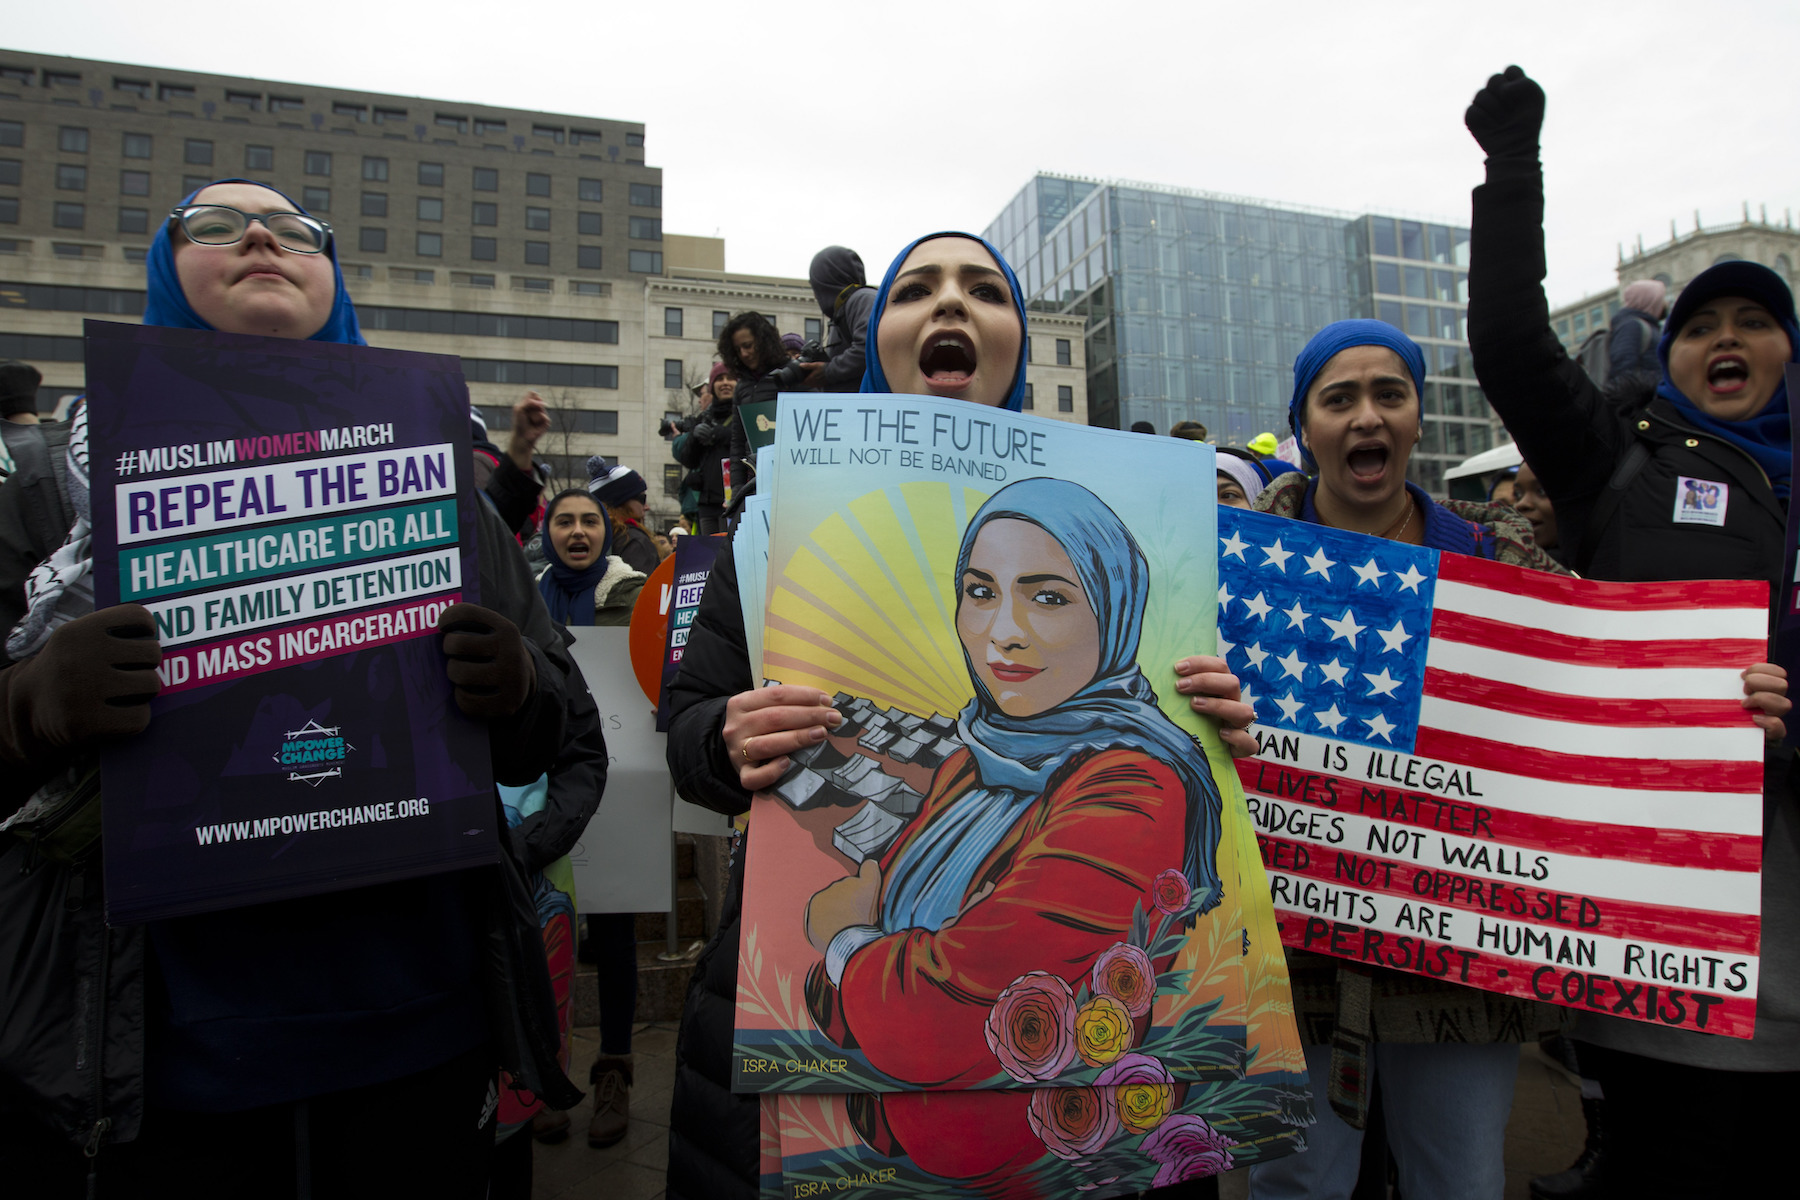 "<div class=""meta image-caption""><div class=""origin-logo origin-image ap""><span>AP</span></div><span class=""caption-text"">A group holds up signs at Freedom Plaza during the Women's March in Washington on Saturday, Jan. 19, 2019. (AP Photo/Jose Luis Magana)</span></div>"